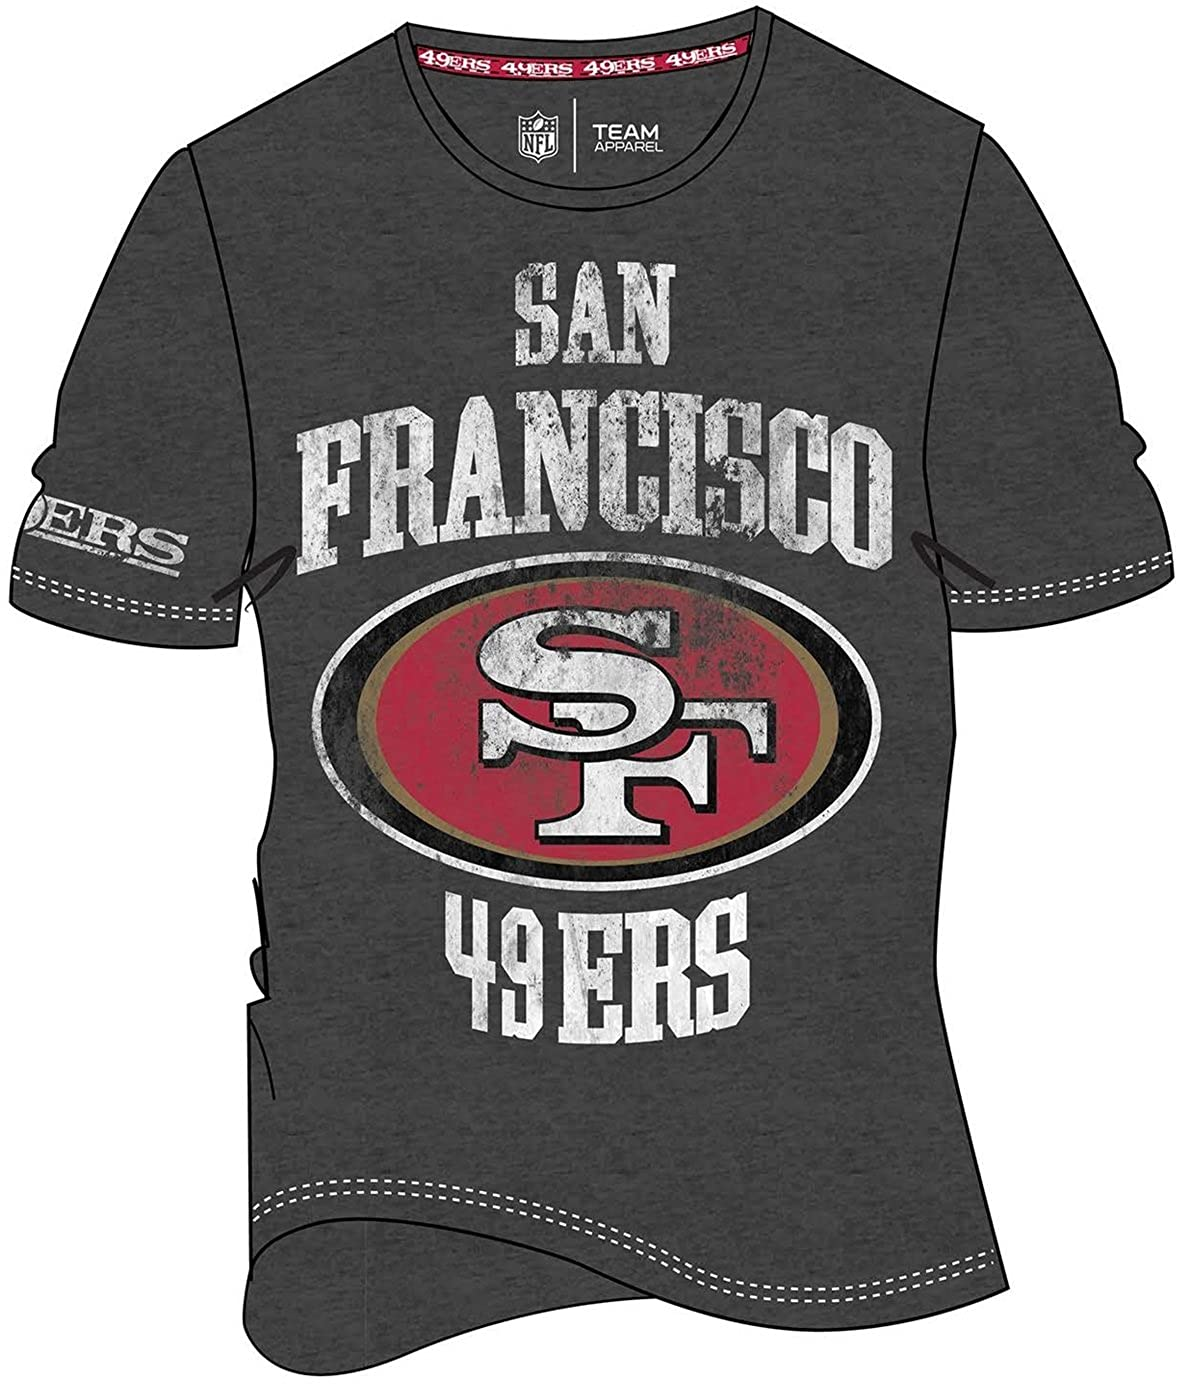 brand new 977a0 14bca Cheap 49ers T Shirts Free Shipping